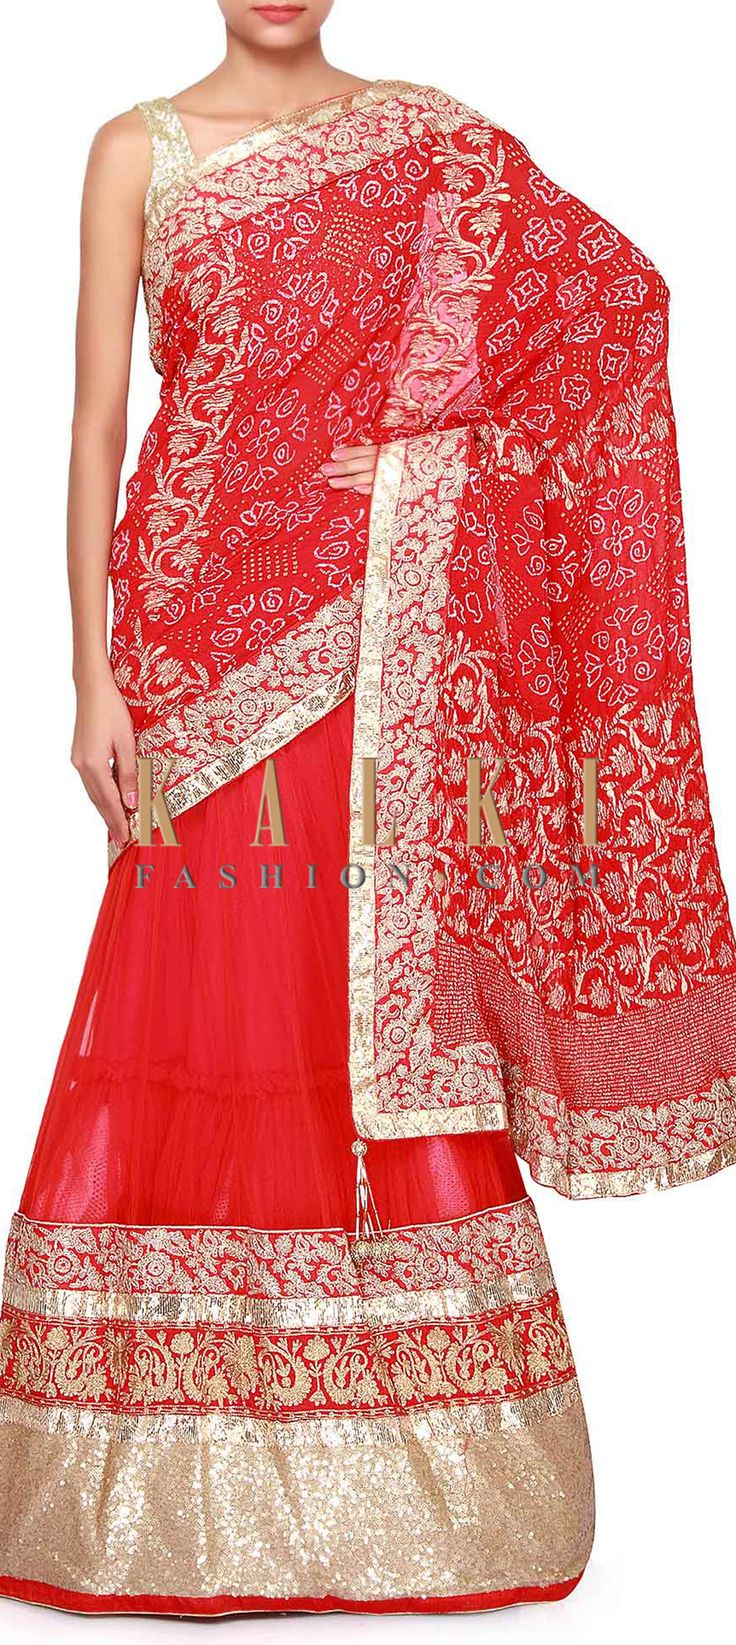 Buy Online from the link below. We ship worldwide (Free Shipping over US$100). Product SKU - 303086.Product Link - http://www.kalkifashion.com/red-lehenga-saree-adorn-in-sequin-embroidery-only-on-kalki.html